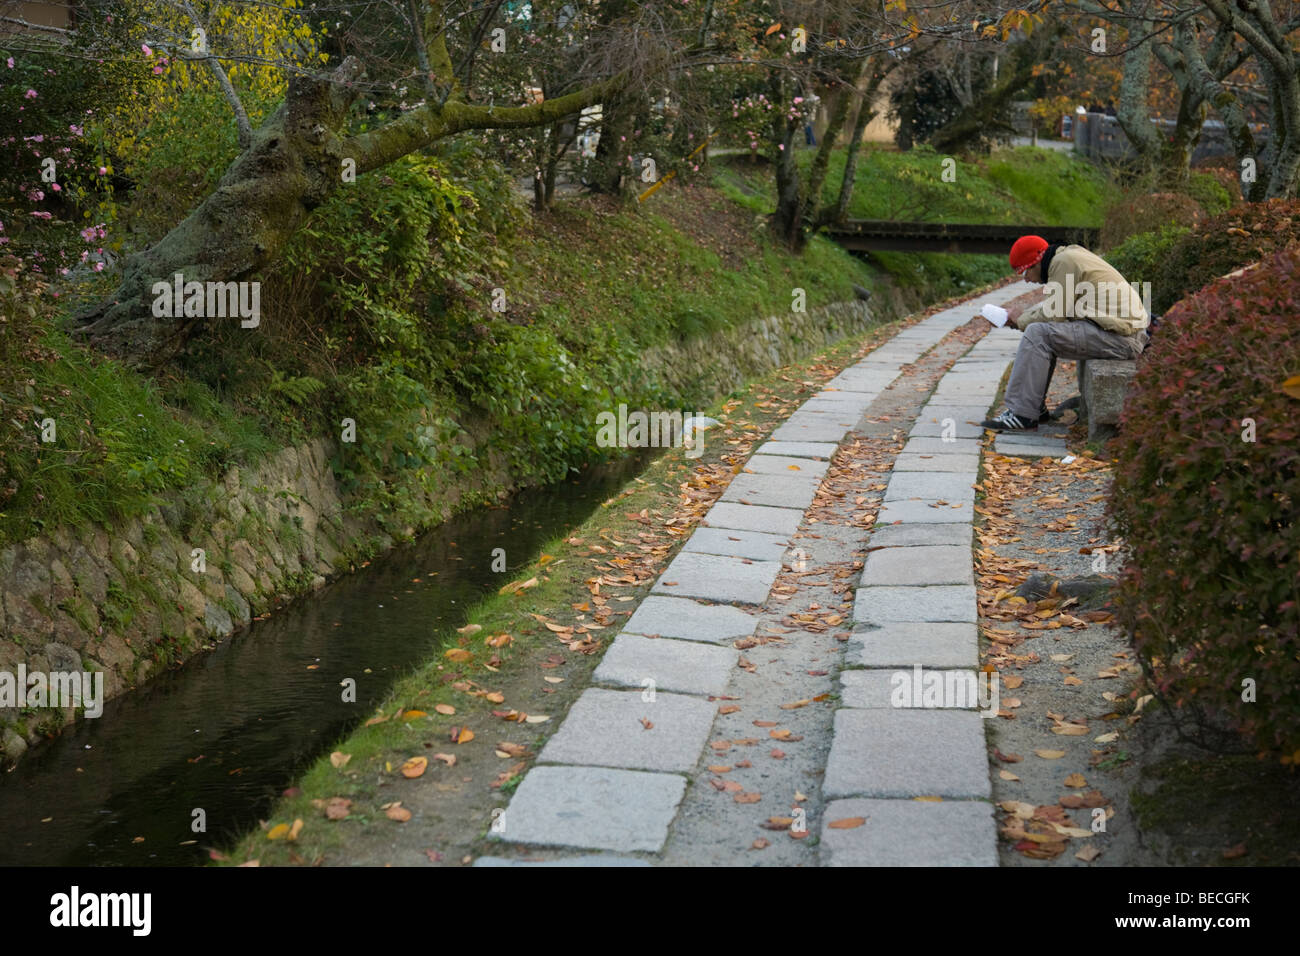 The Path of Philosophy, or Tetsugakunomichi as it is known in Japanese - Stock Image